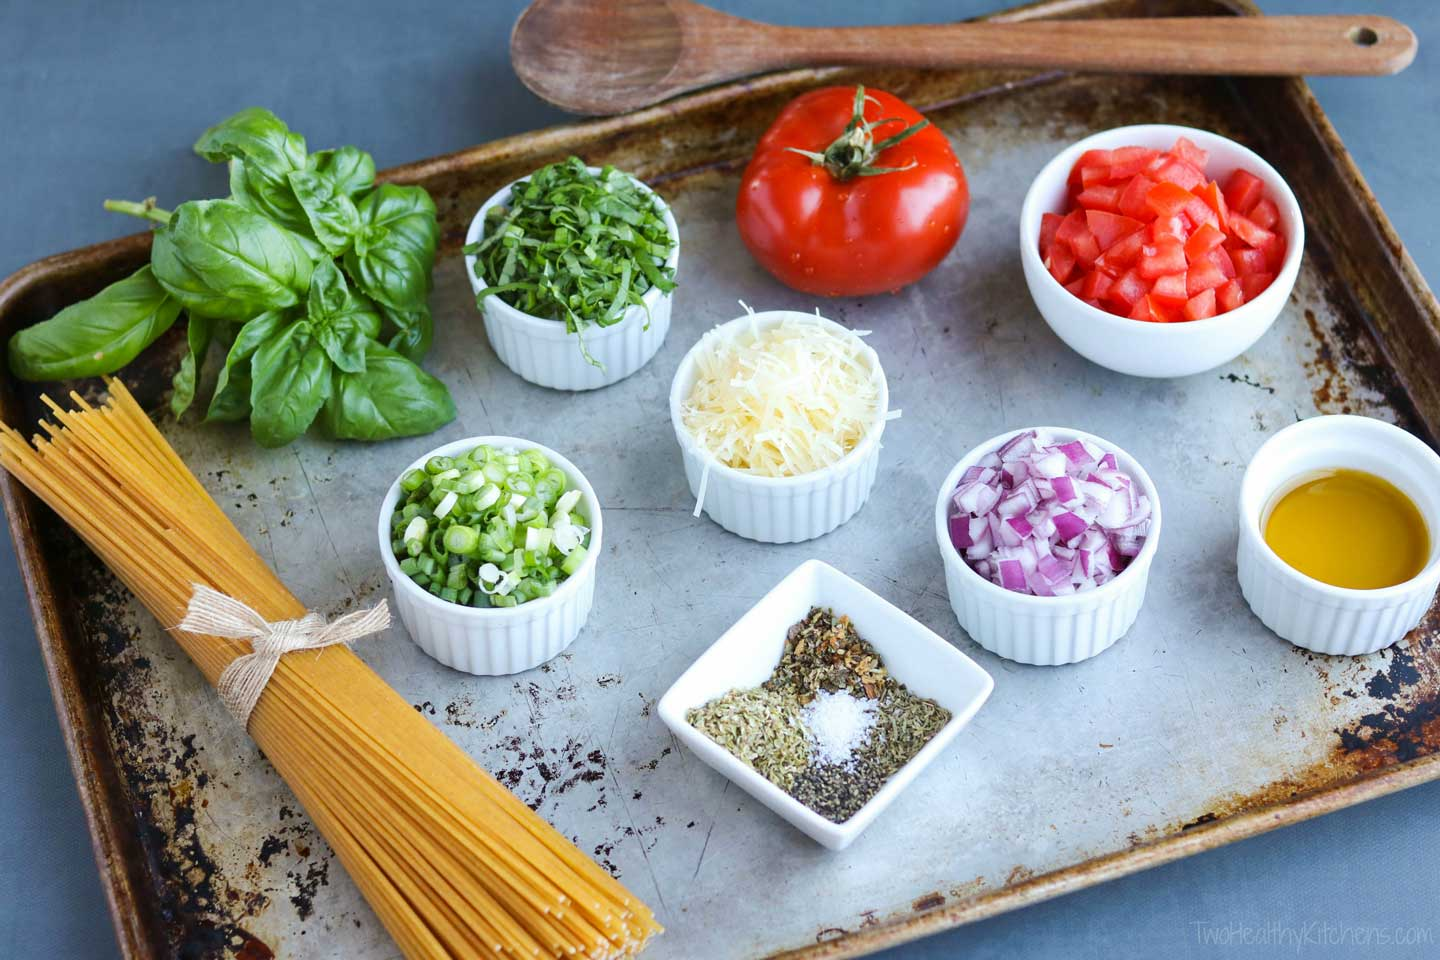 When you're working on your meal planning, it's important to understand how long it will take to do all the washing, chopping and measuring needed for a recipe.